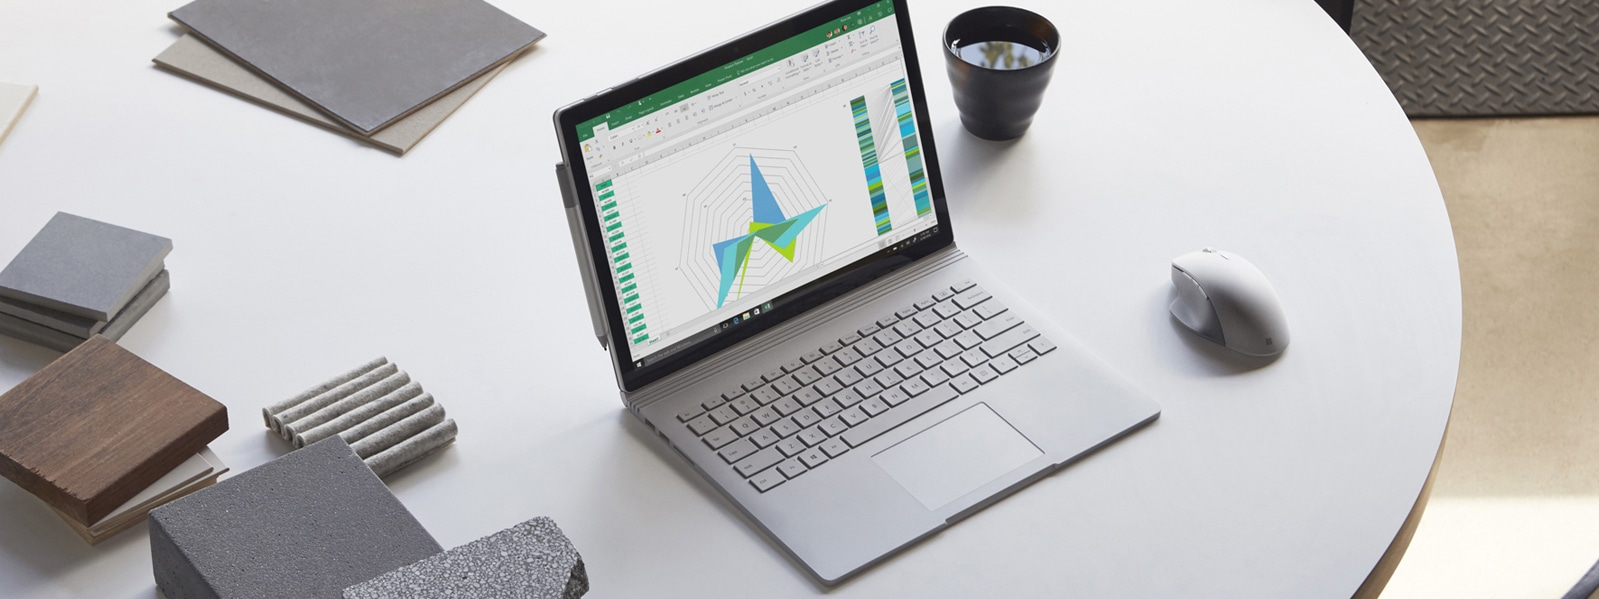 Surface Book 2 with Surface Pen attached to the side, Microsoft Surface Precision Mouse on the right, on a table.